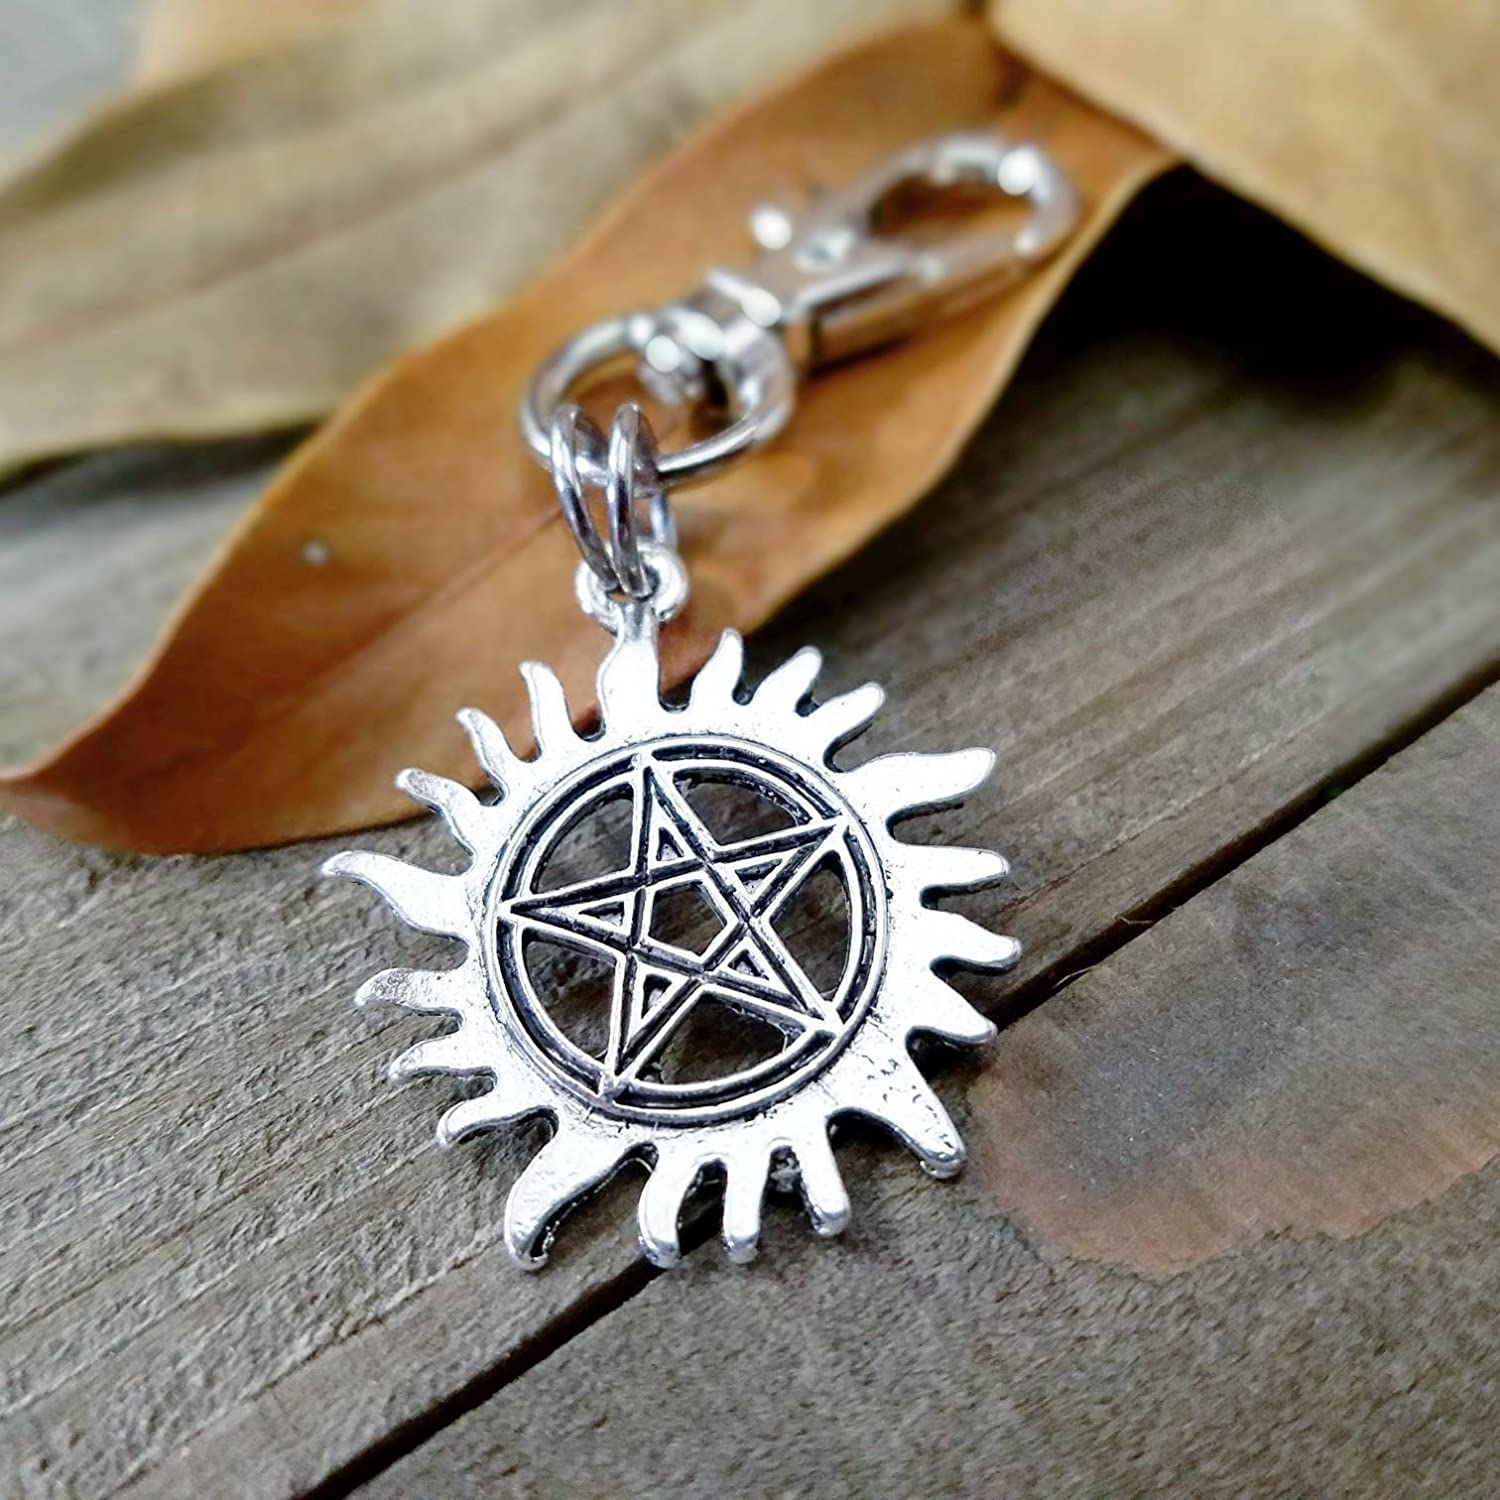 Cosplay | Anti possession | planner charms | Supernatural clip | silver pentacle | keychain | charm clips | cosplay accessories